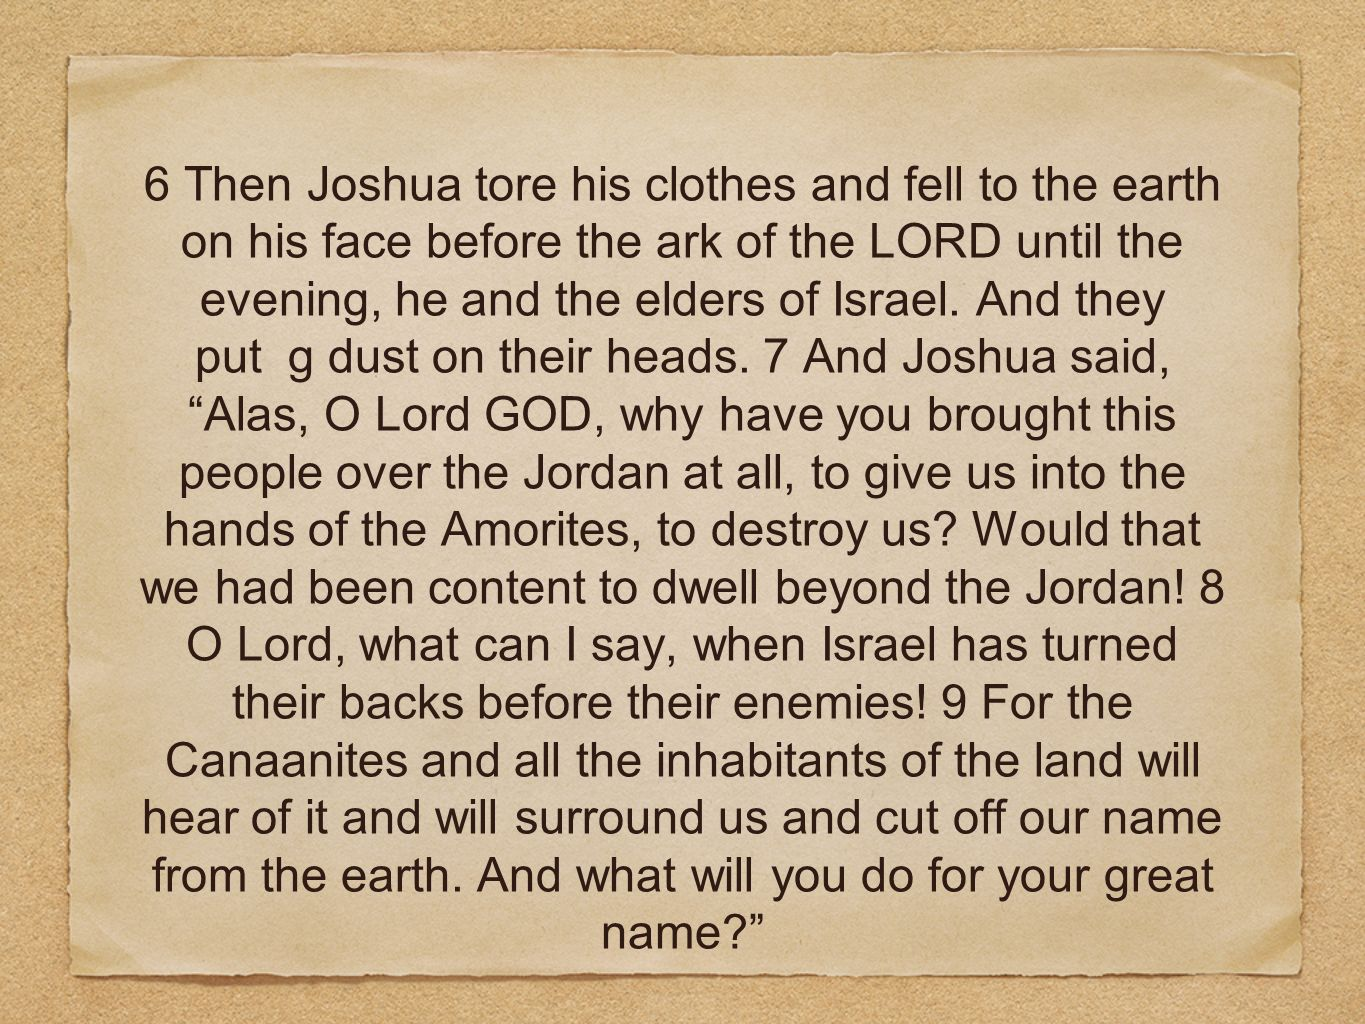 6 Then Joshua tore his clothes and fell to the earth on his face before the ark of the LORD until the evening, he and the elders of Israel.